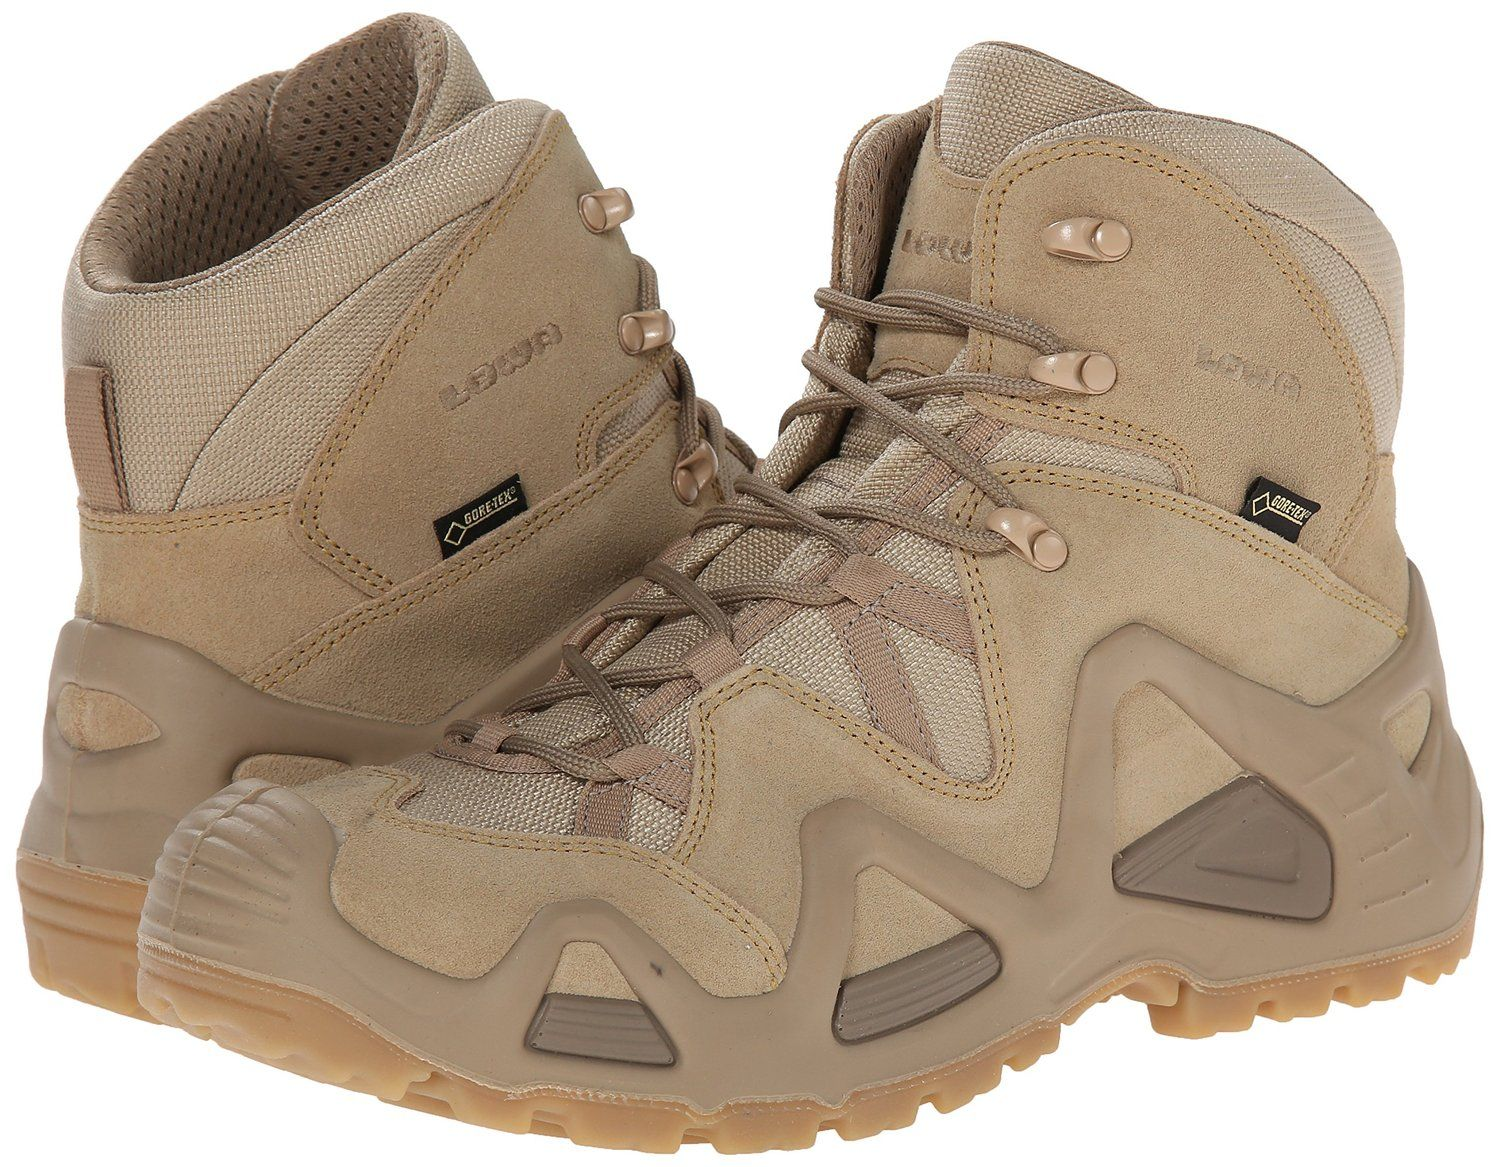 1ac6ffea080 Lowa Men's Zephyr GTX Mid TF Hiking Boot | Amazon.com | Dream Gears ...